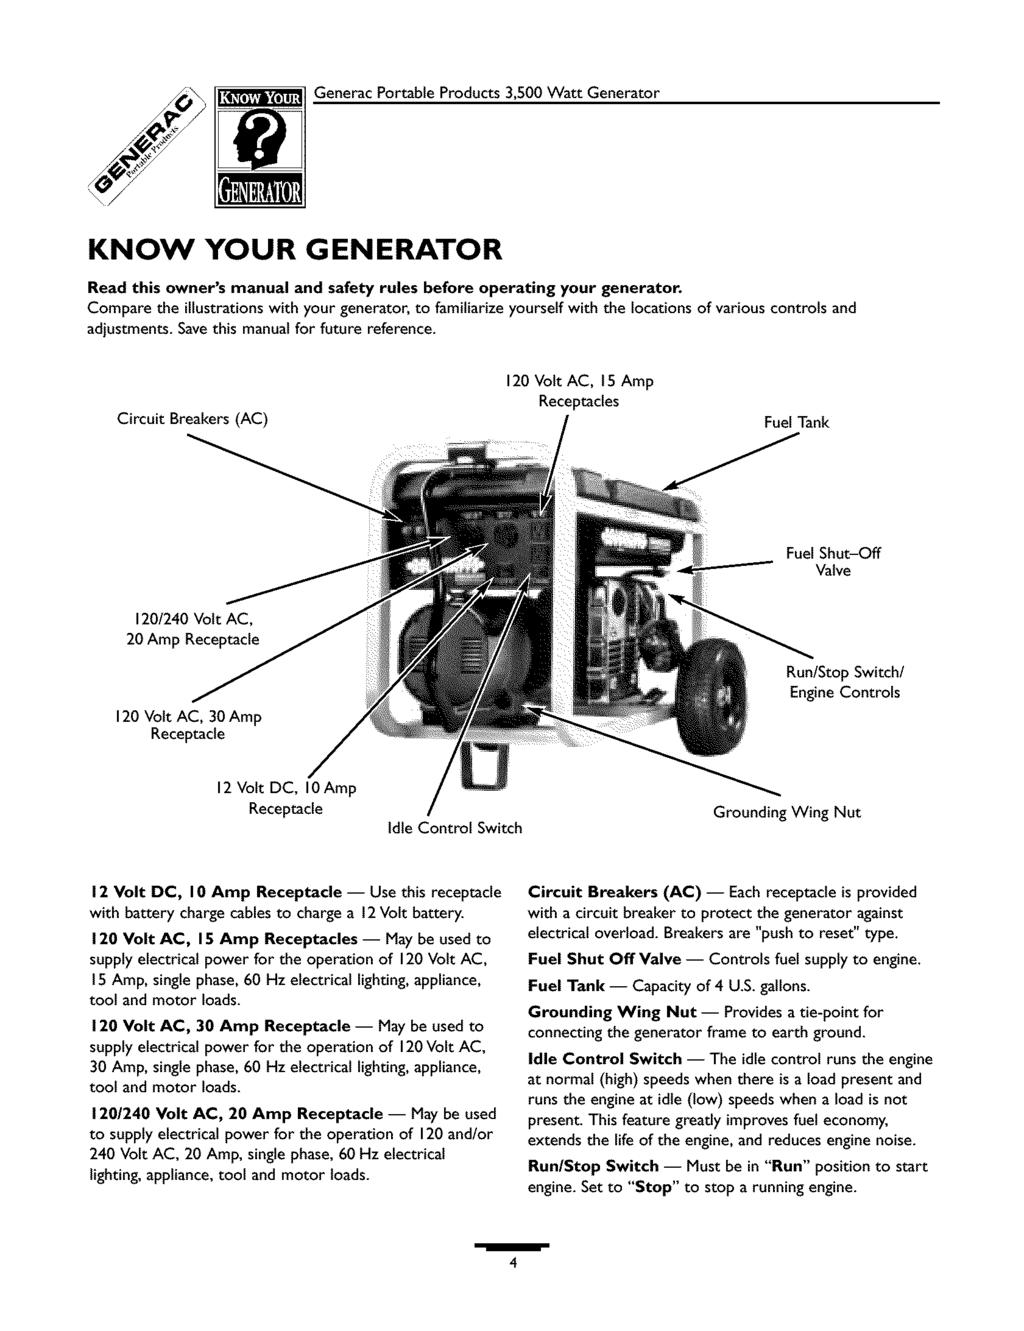 Portable Generator Owners Manual Pdf 240 110 Volt Ac Wiring Diagram Generacportableproducts 3500wattgenerator Know Your Read This And Safety Rules Before Operating